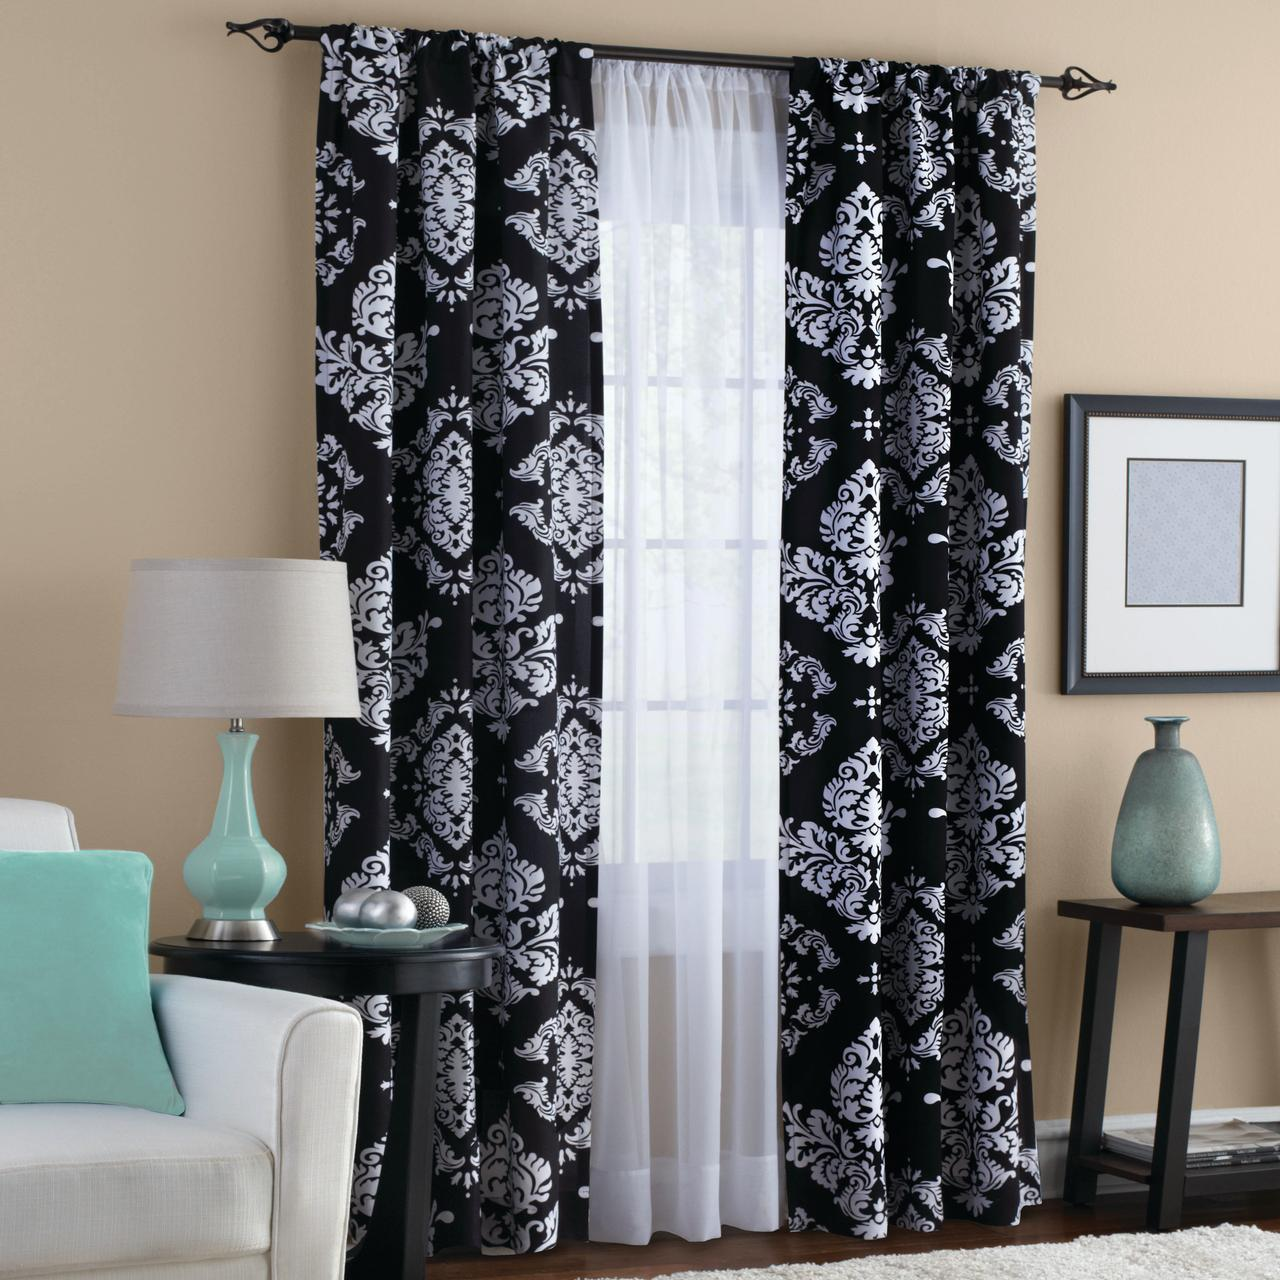 Mainstays Classic Noir Window Curtains, Set Of 2